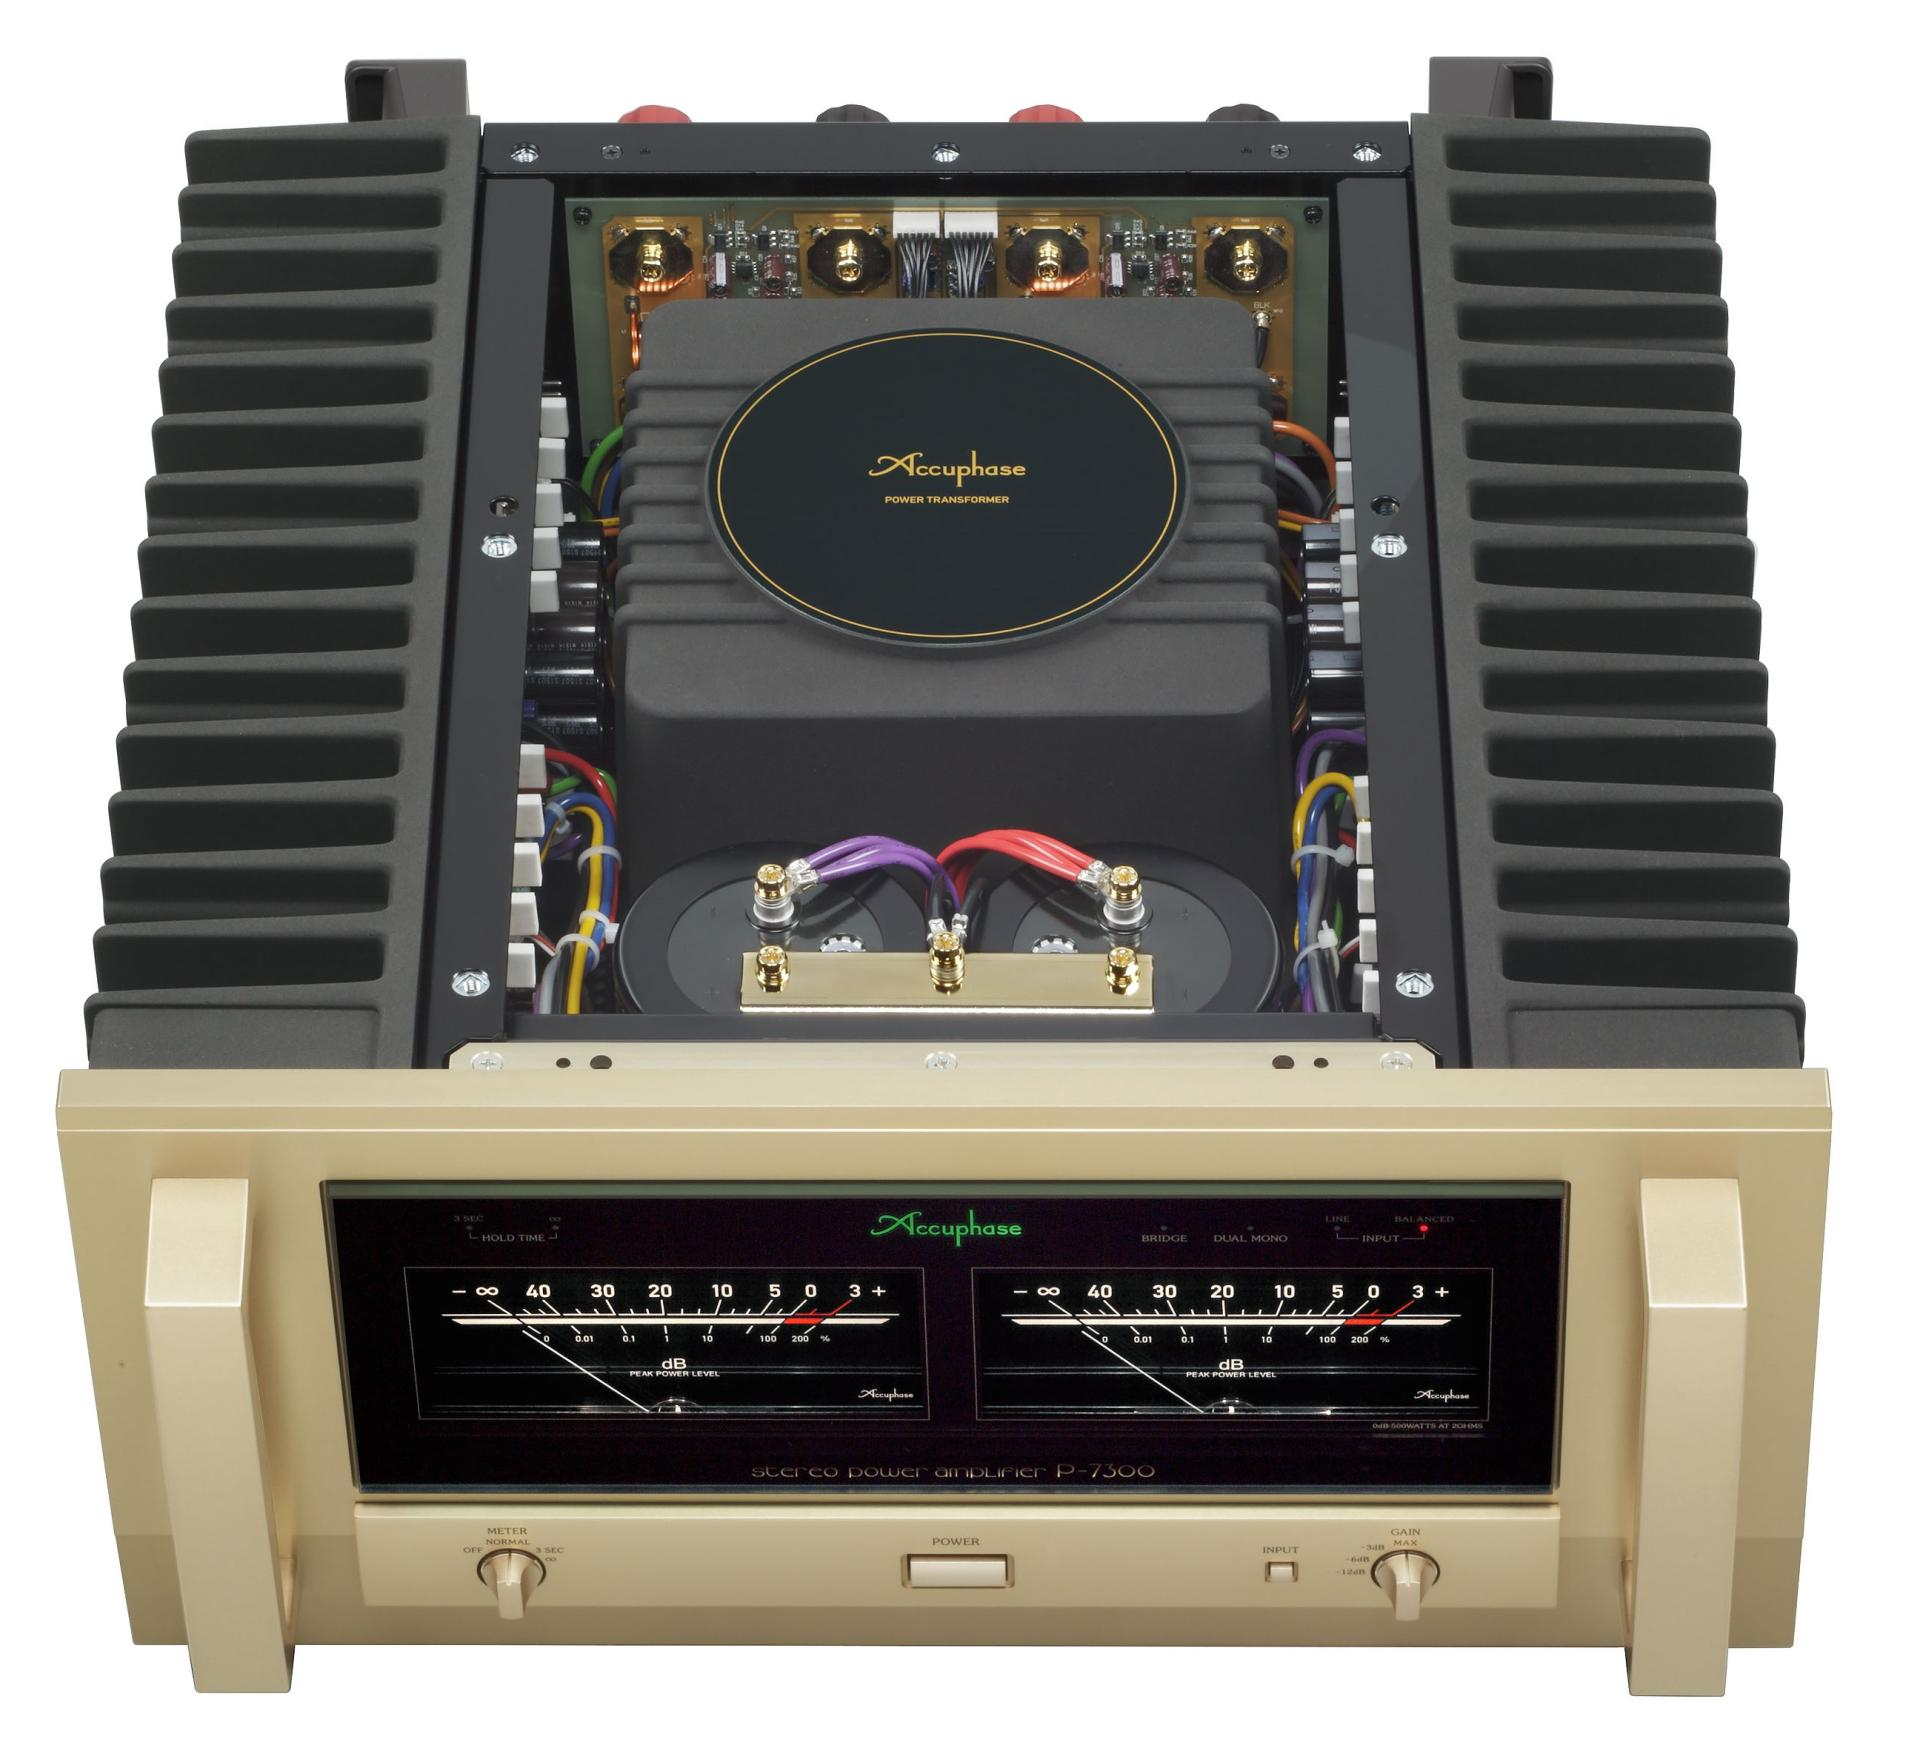 Accuphase P-7300 | AnhDuy Audio